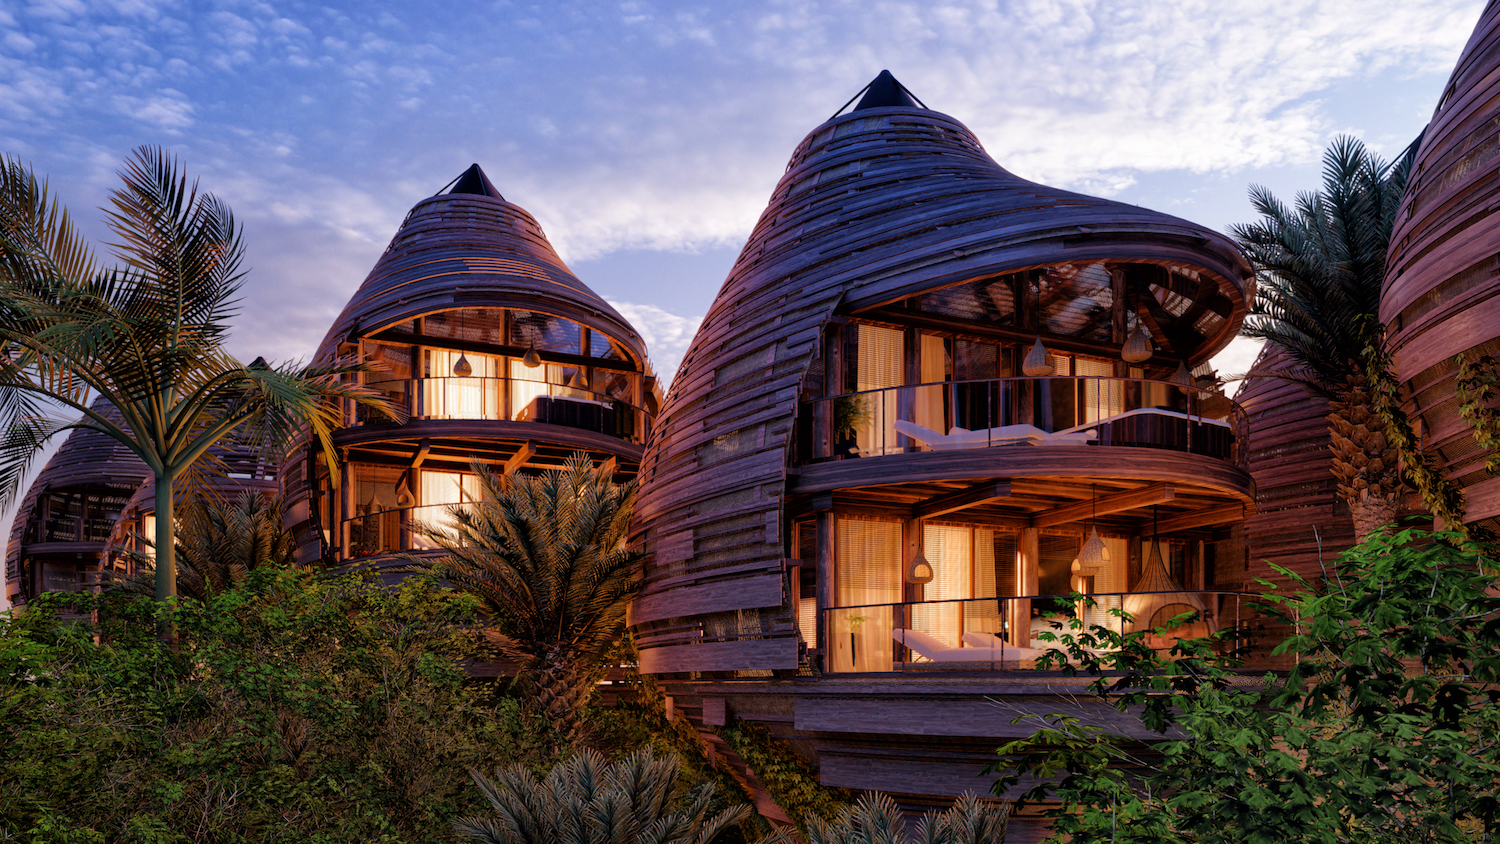 the nest shaped hotel with sea view at night